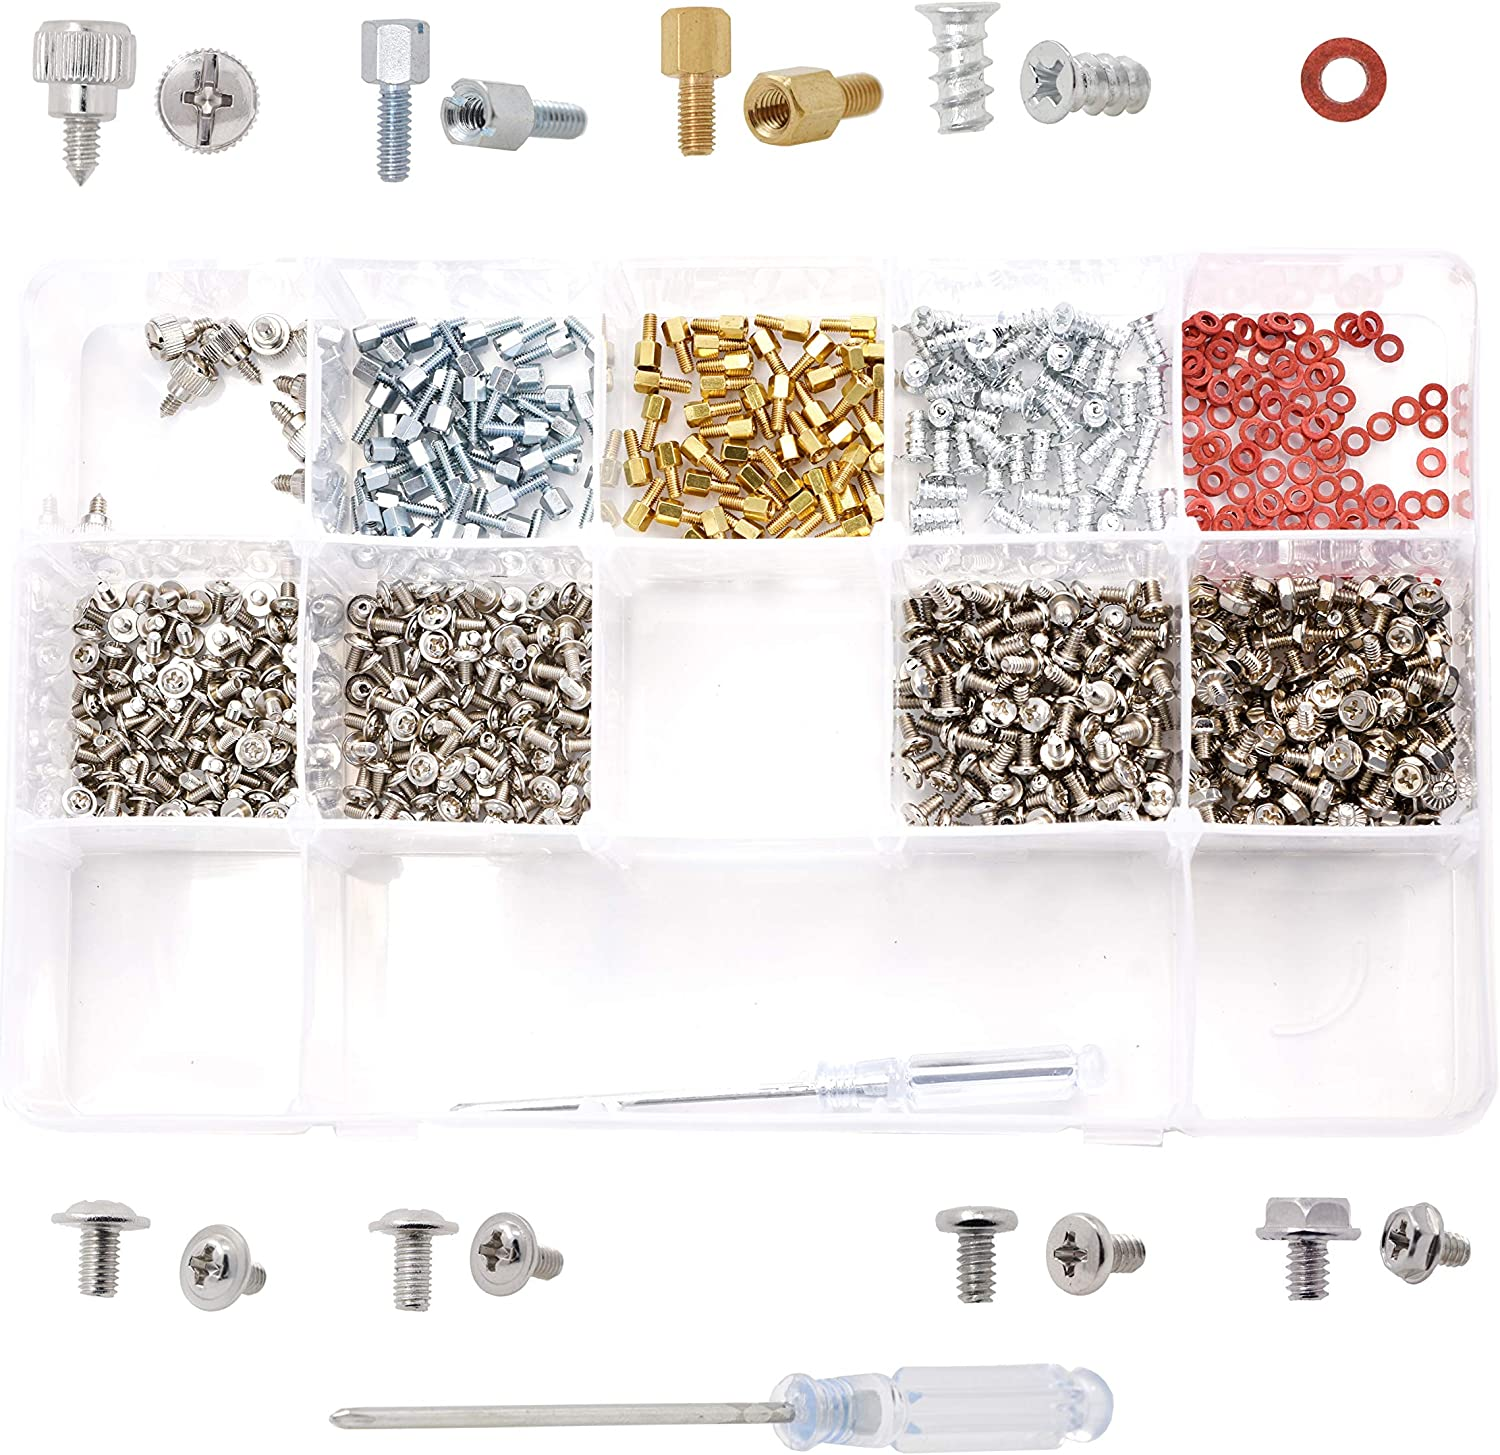 Mandala Crafts Computer Screw Assortment Kit for Computer Case Hard Drive Fan Motherboard Mount and Repair 660 Pieces